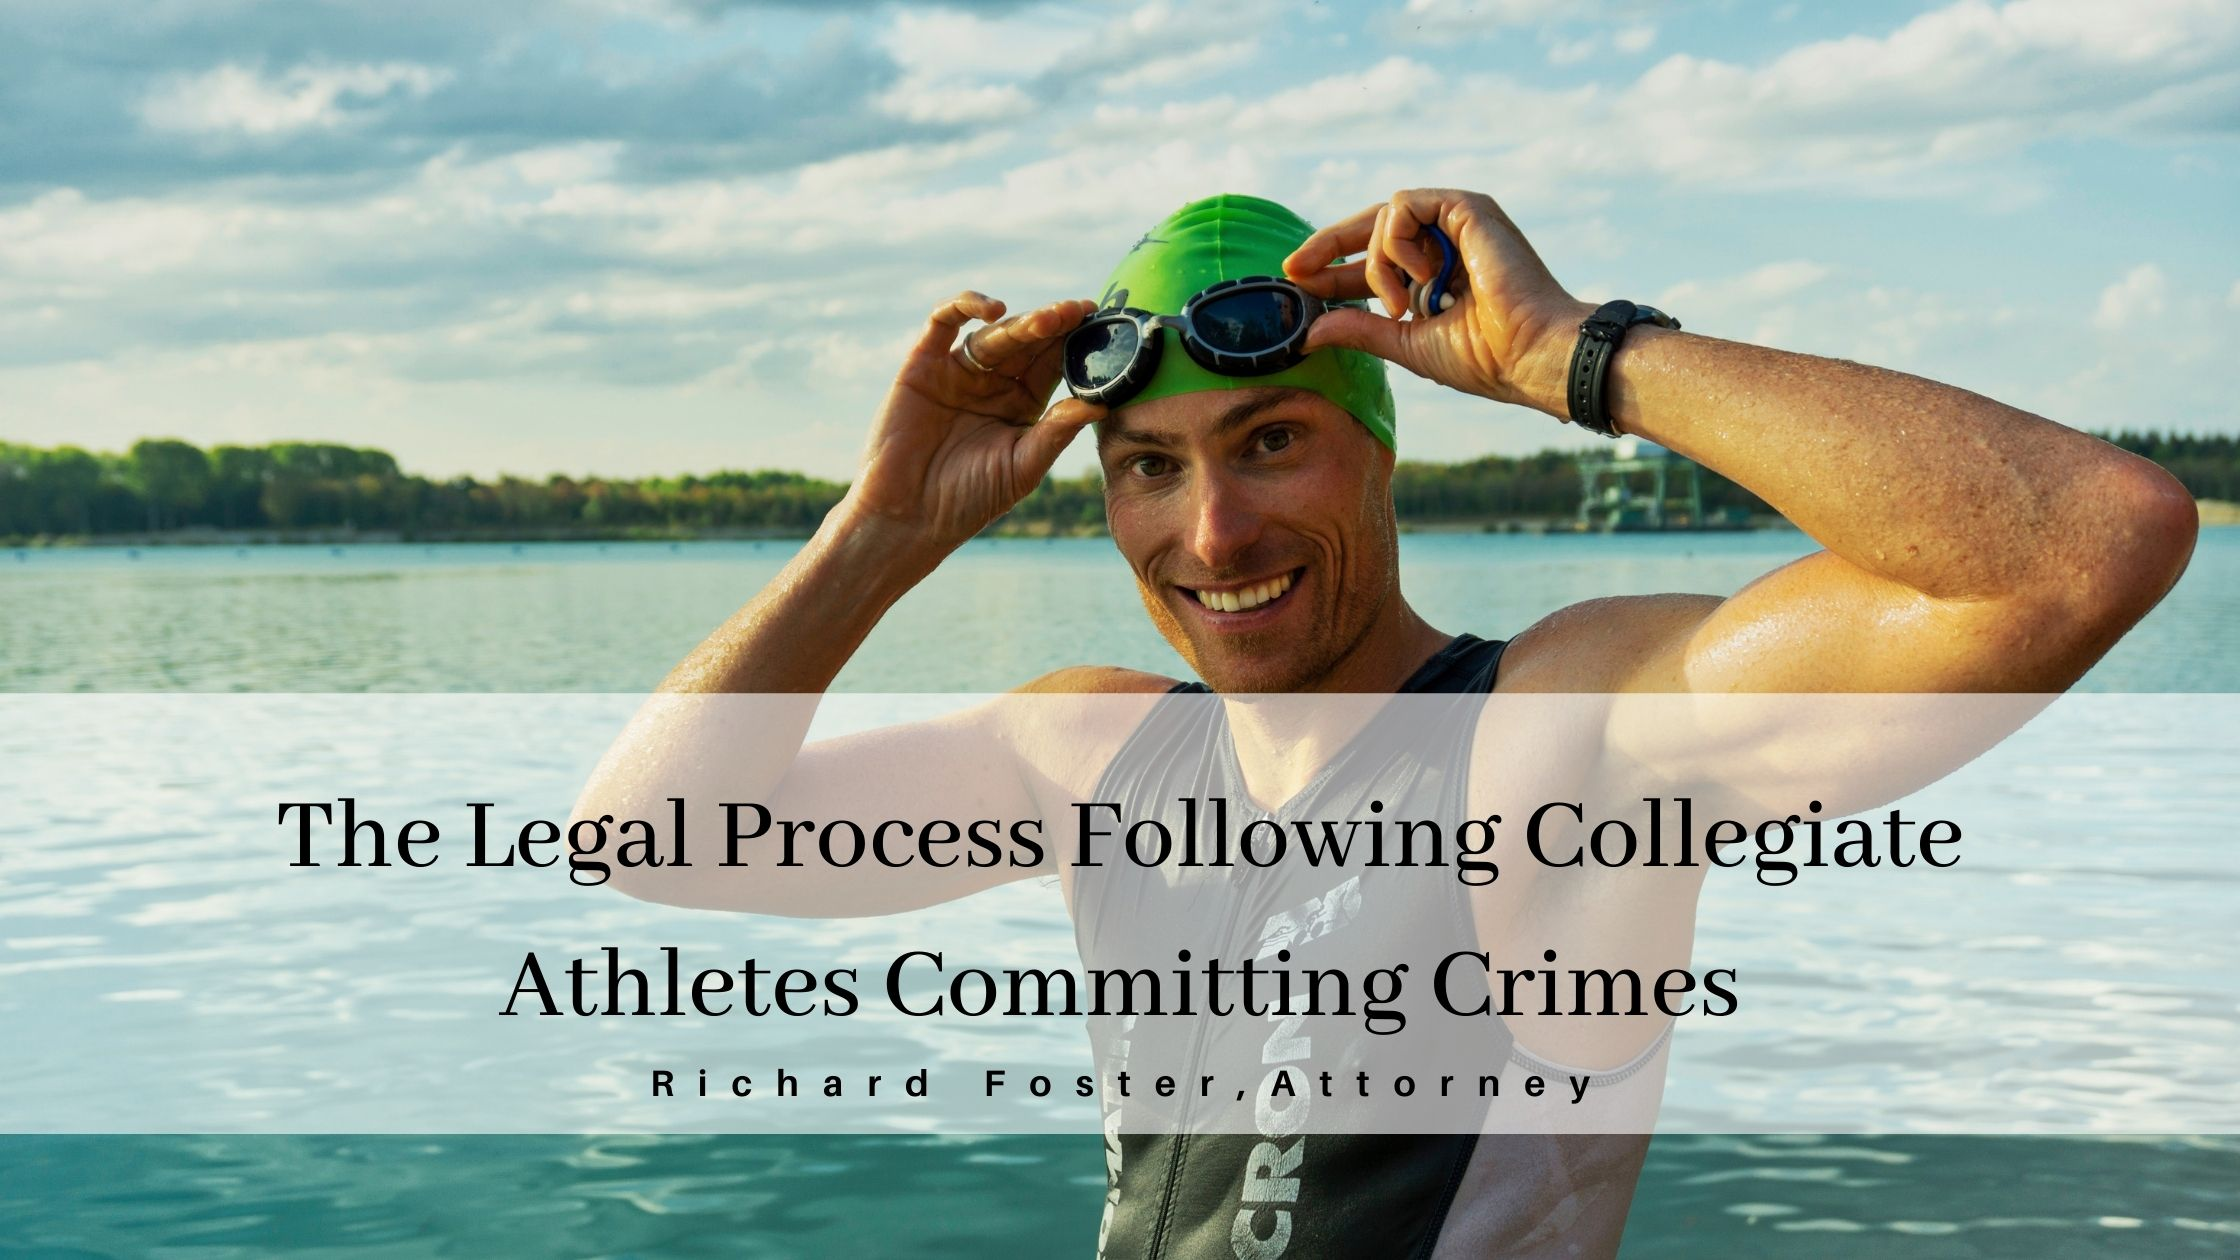 The Legal Process Following Collegiate  Athletes Committing Crimes  Richard Foster, Attorney